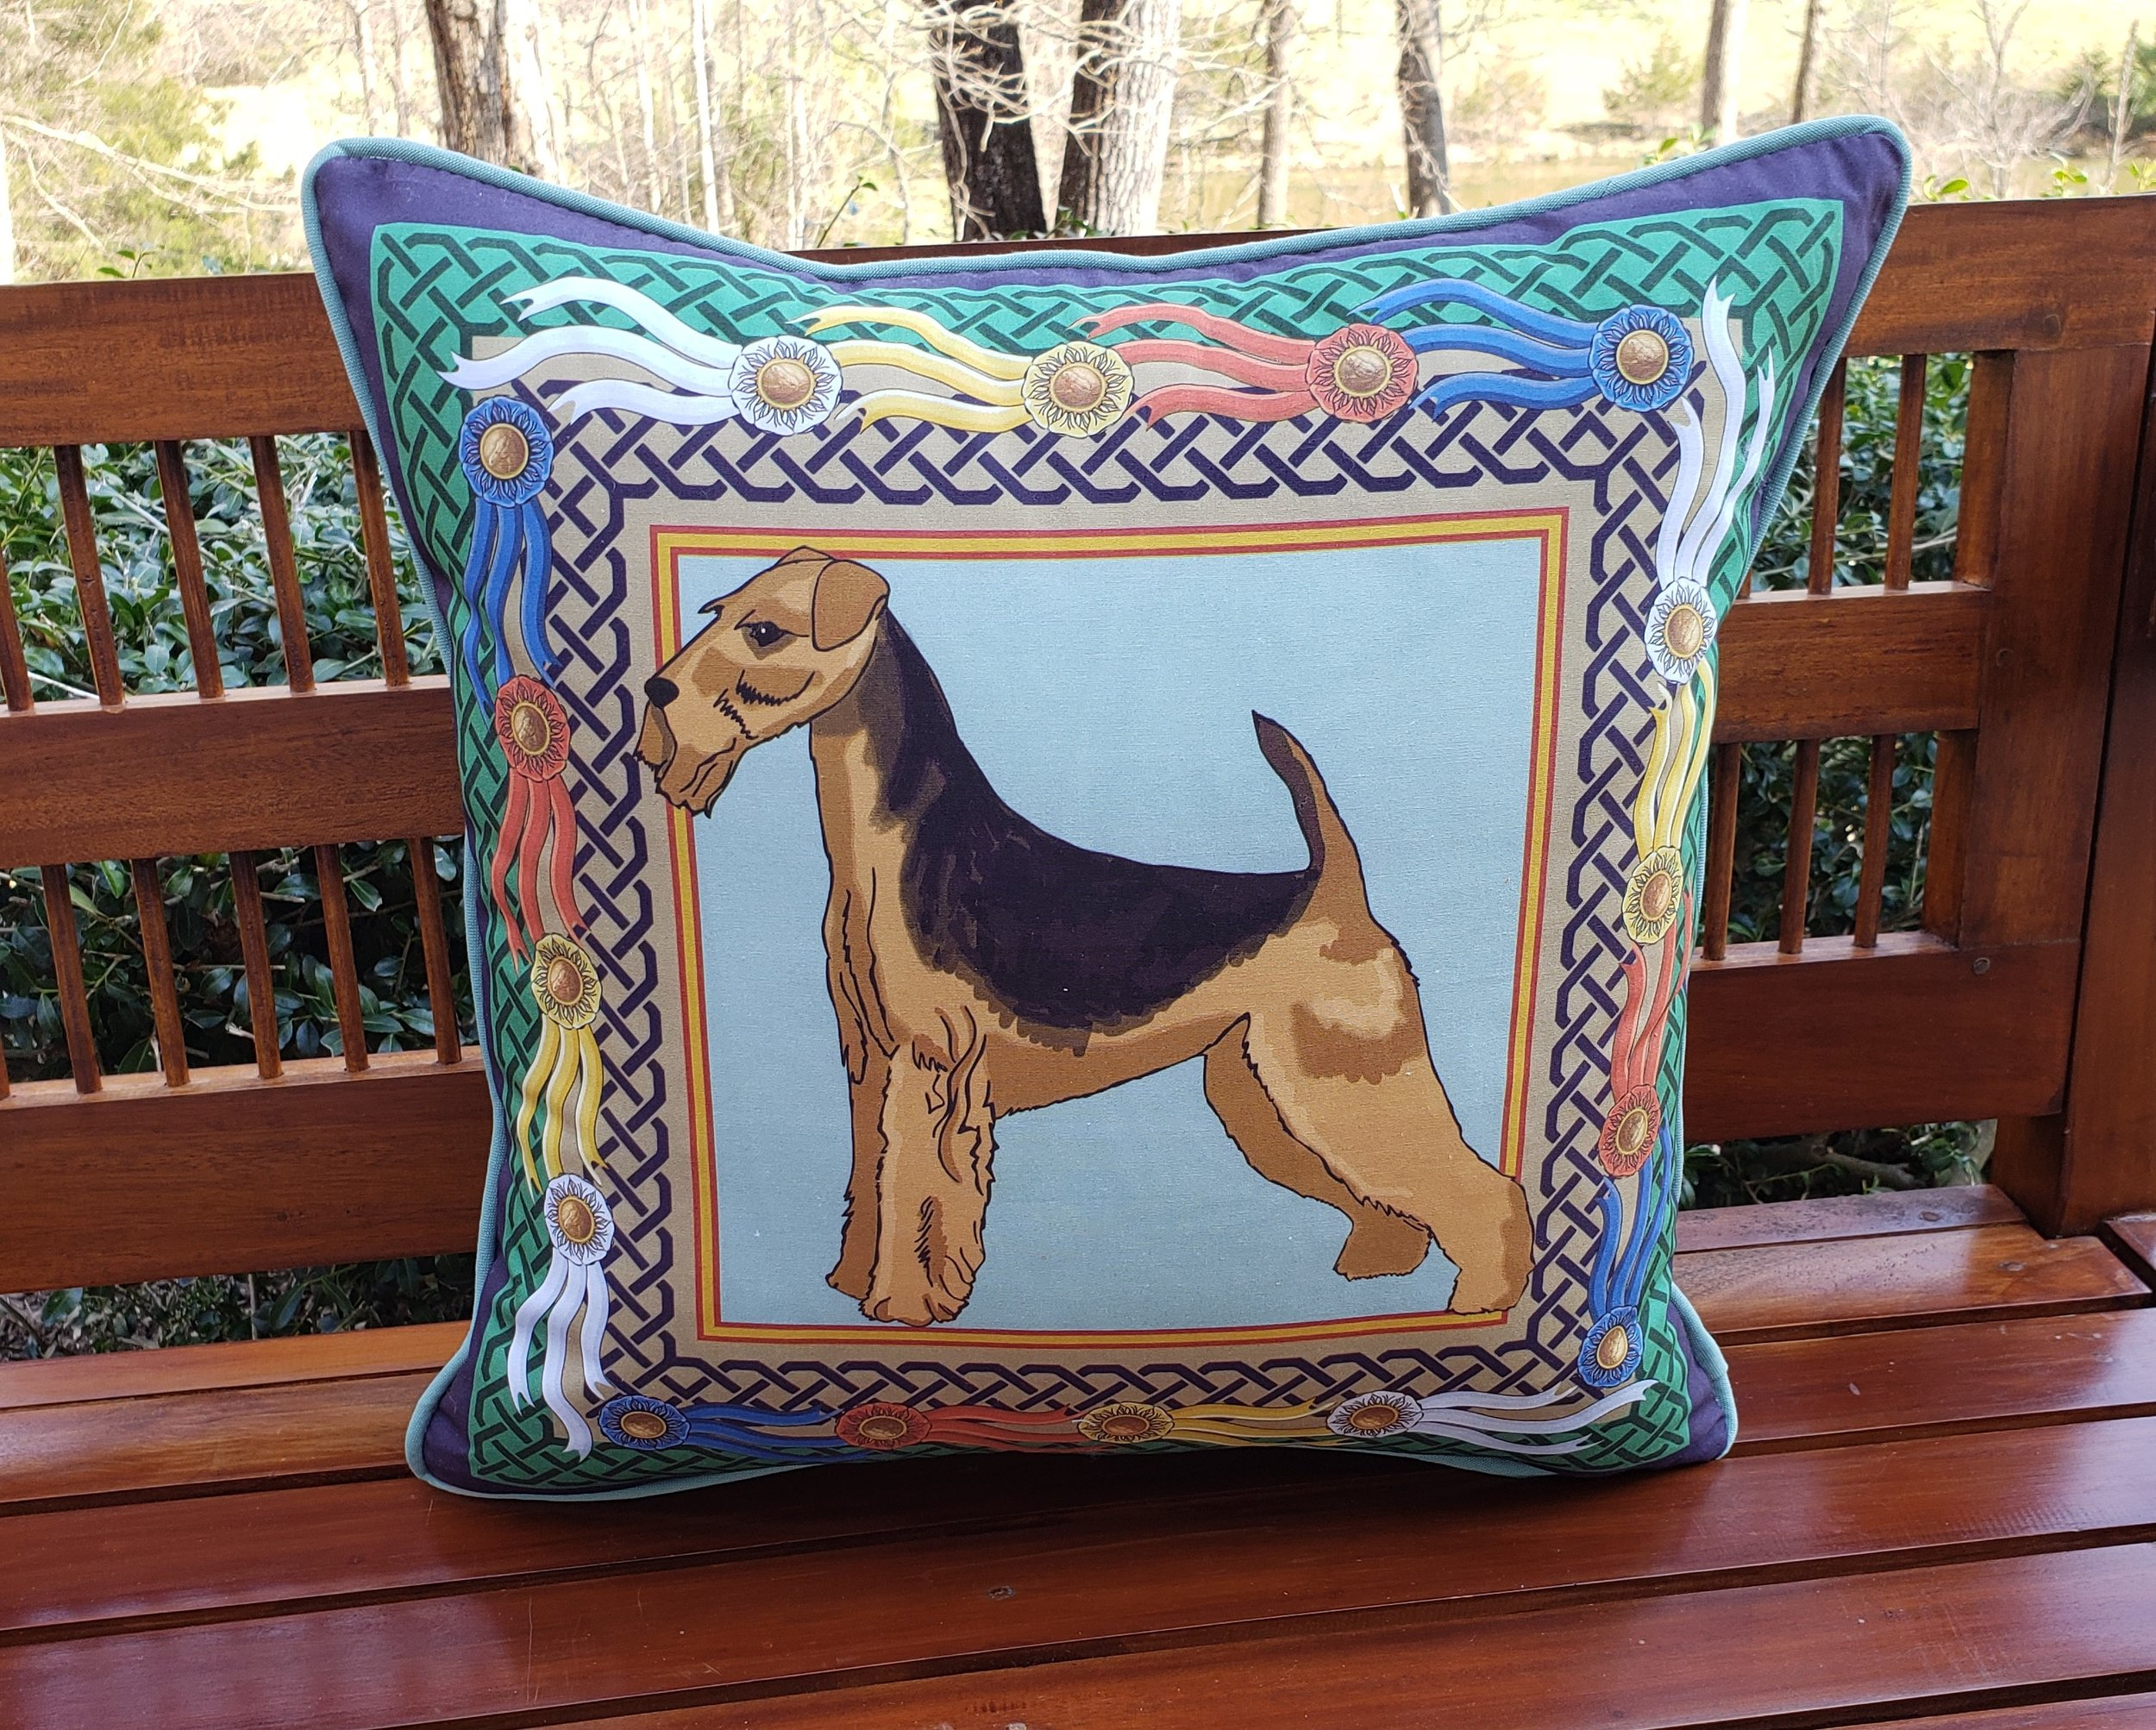 Airedale Terrier Throw Pillow Custom Design $65